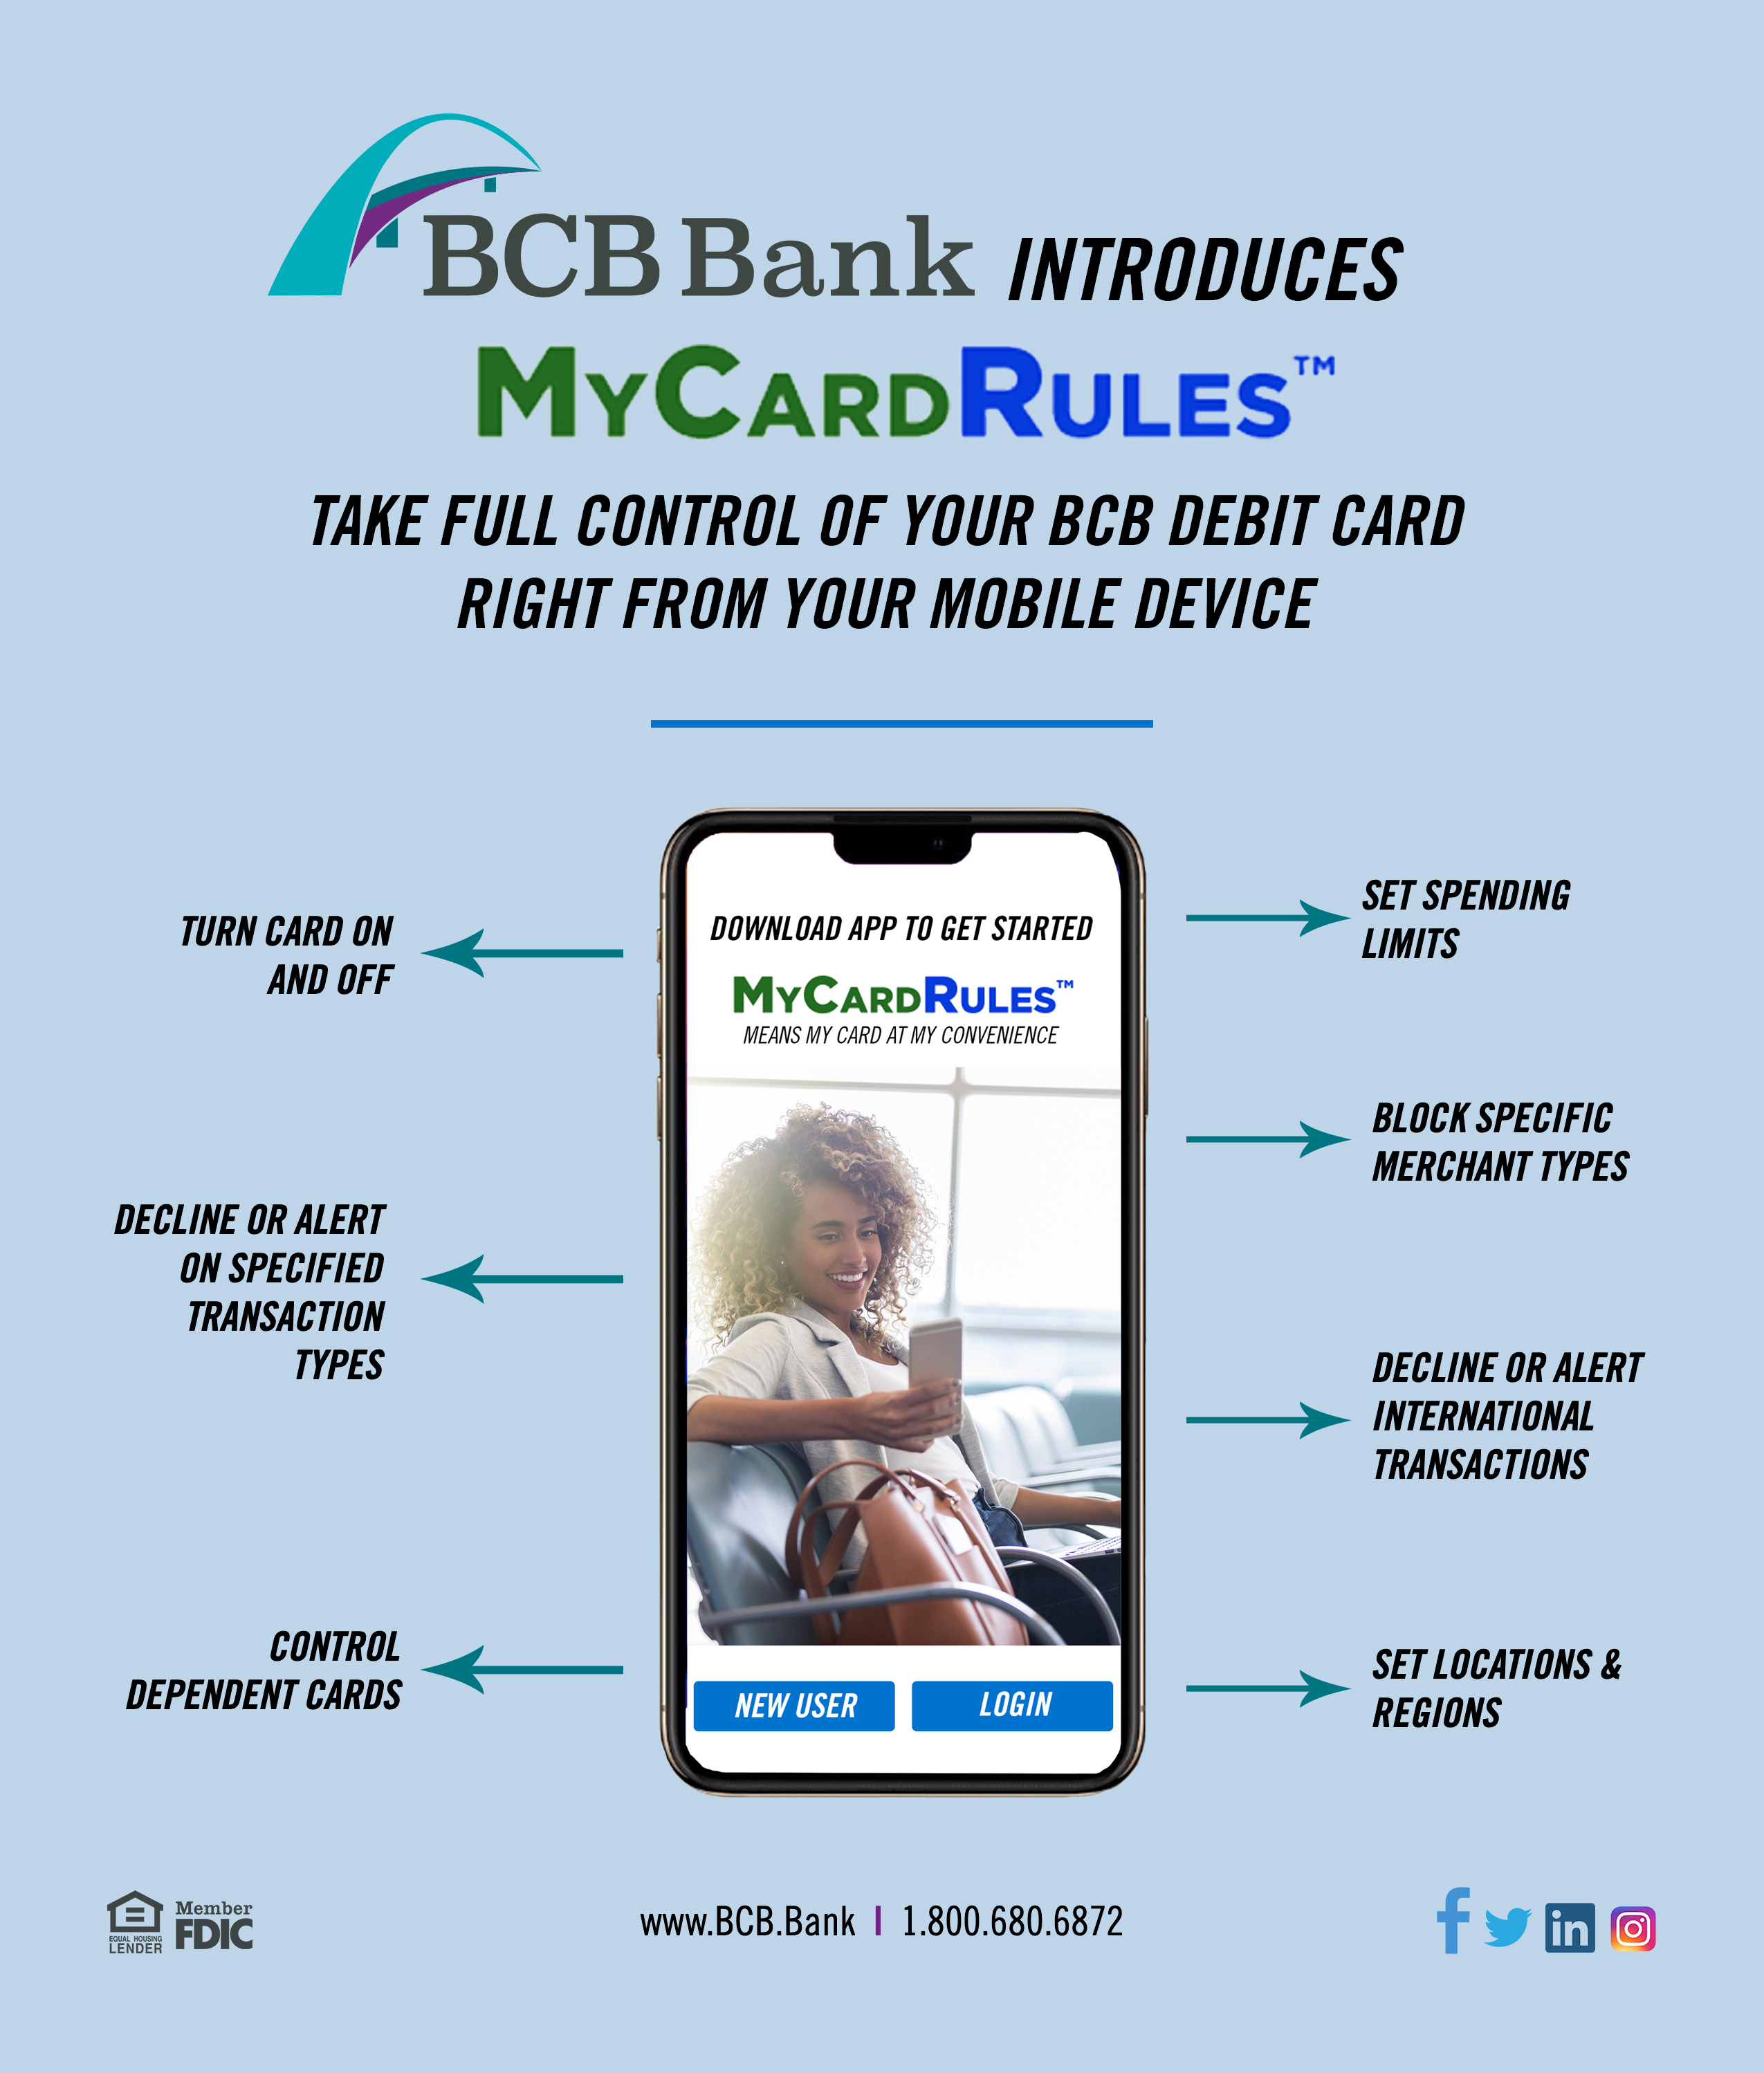 My Card Rules from BCB Bank